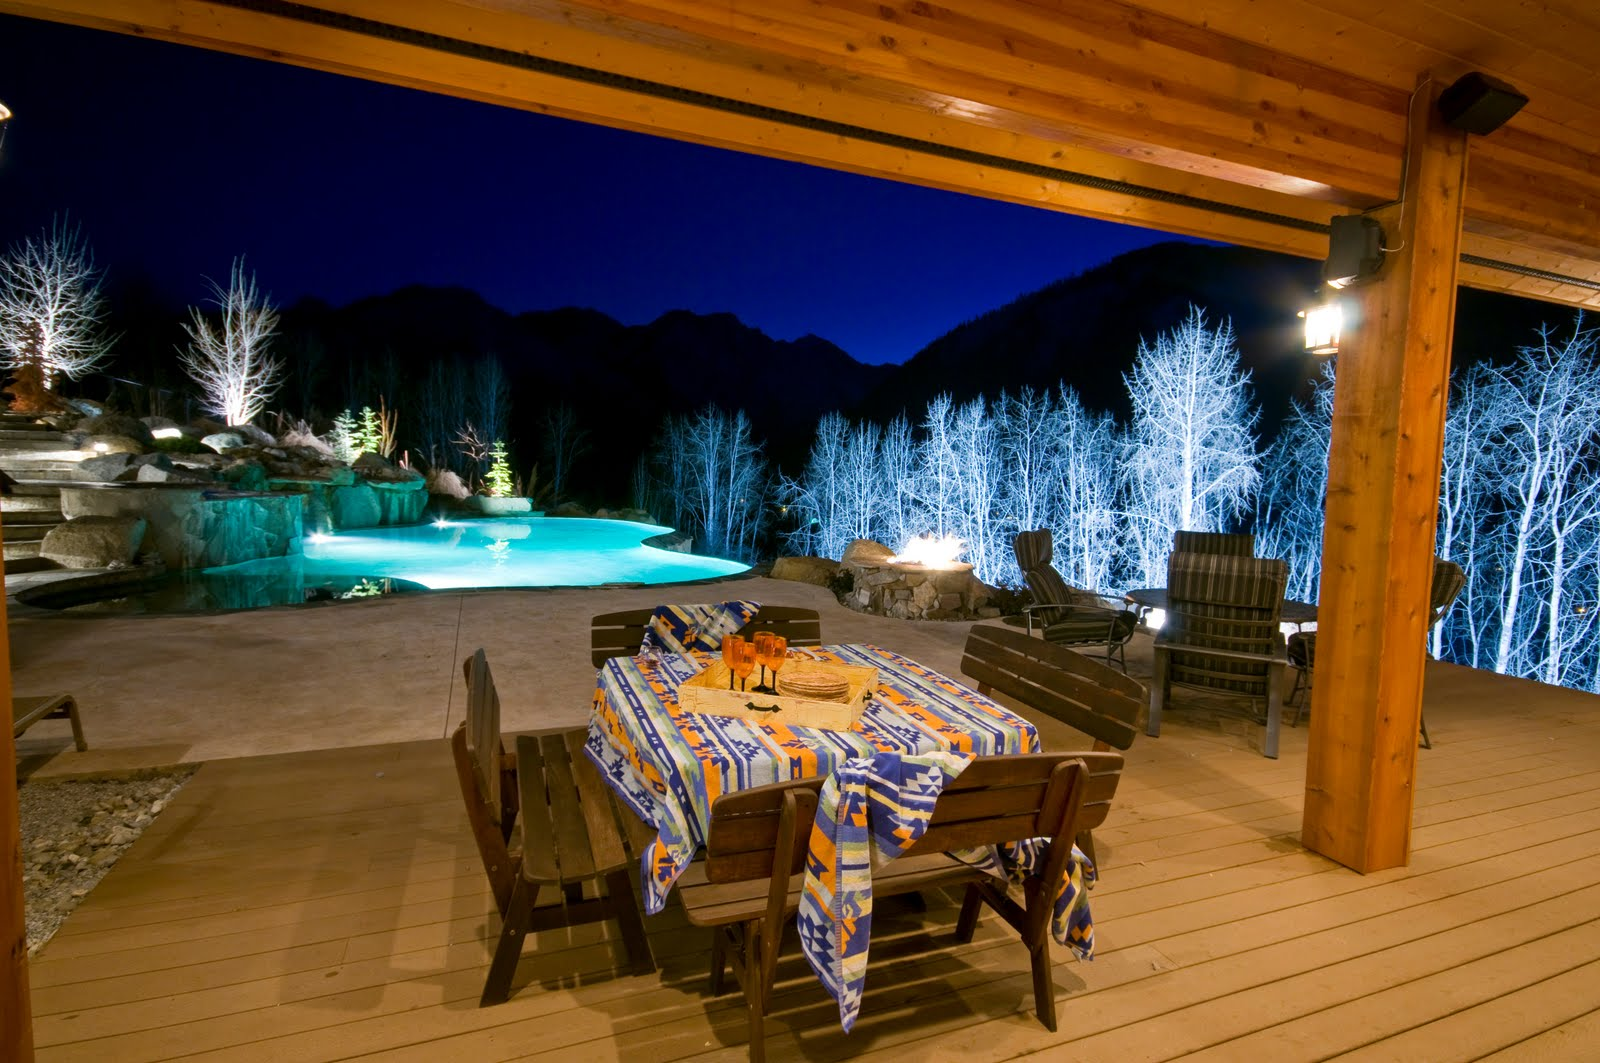 Nice With The Summer Of 2011 Completely Booked We Encourage Anyone Interested In  Staying At Red Roof Lodge To Check Out Our Availablity On Our Website At ...